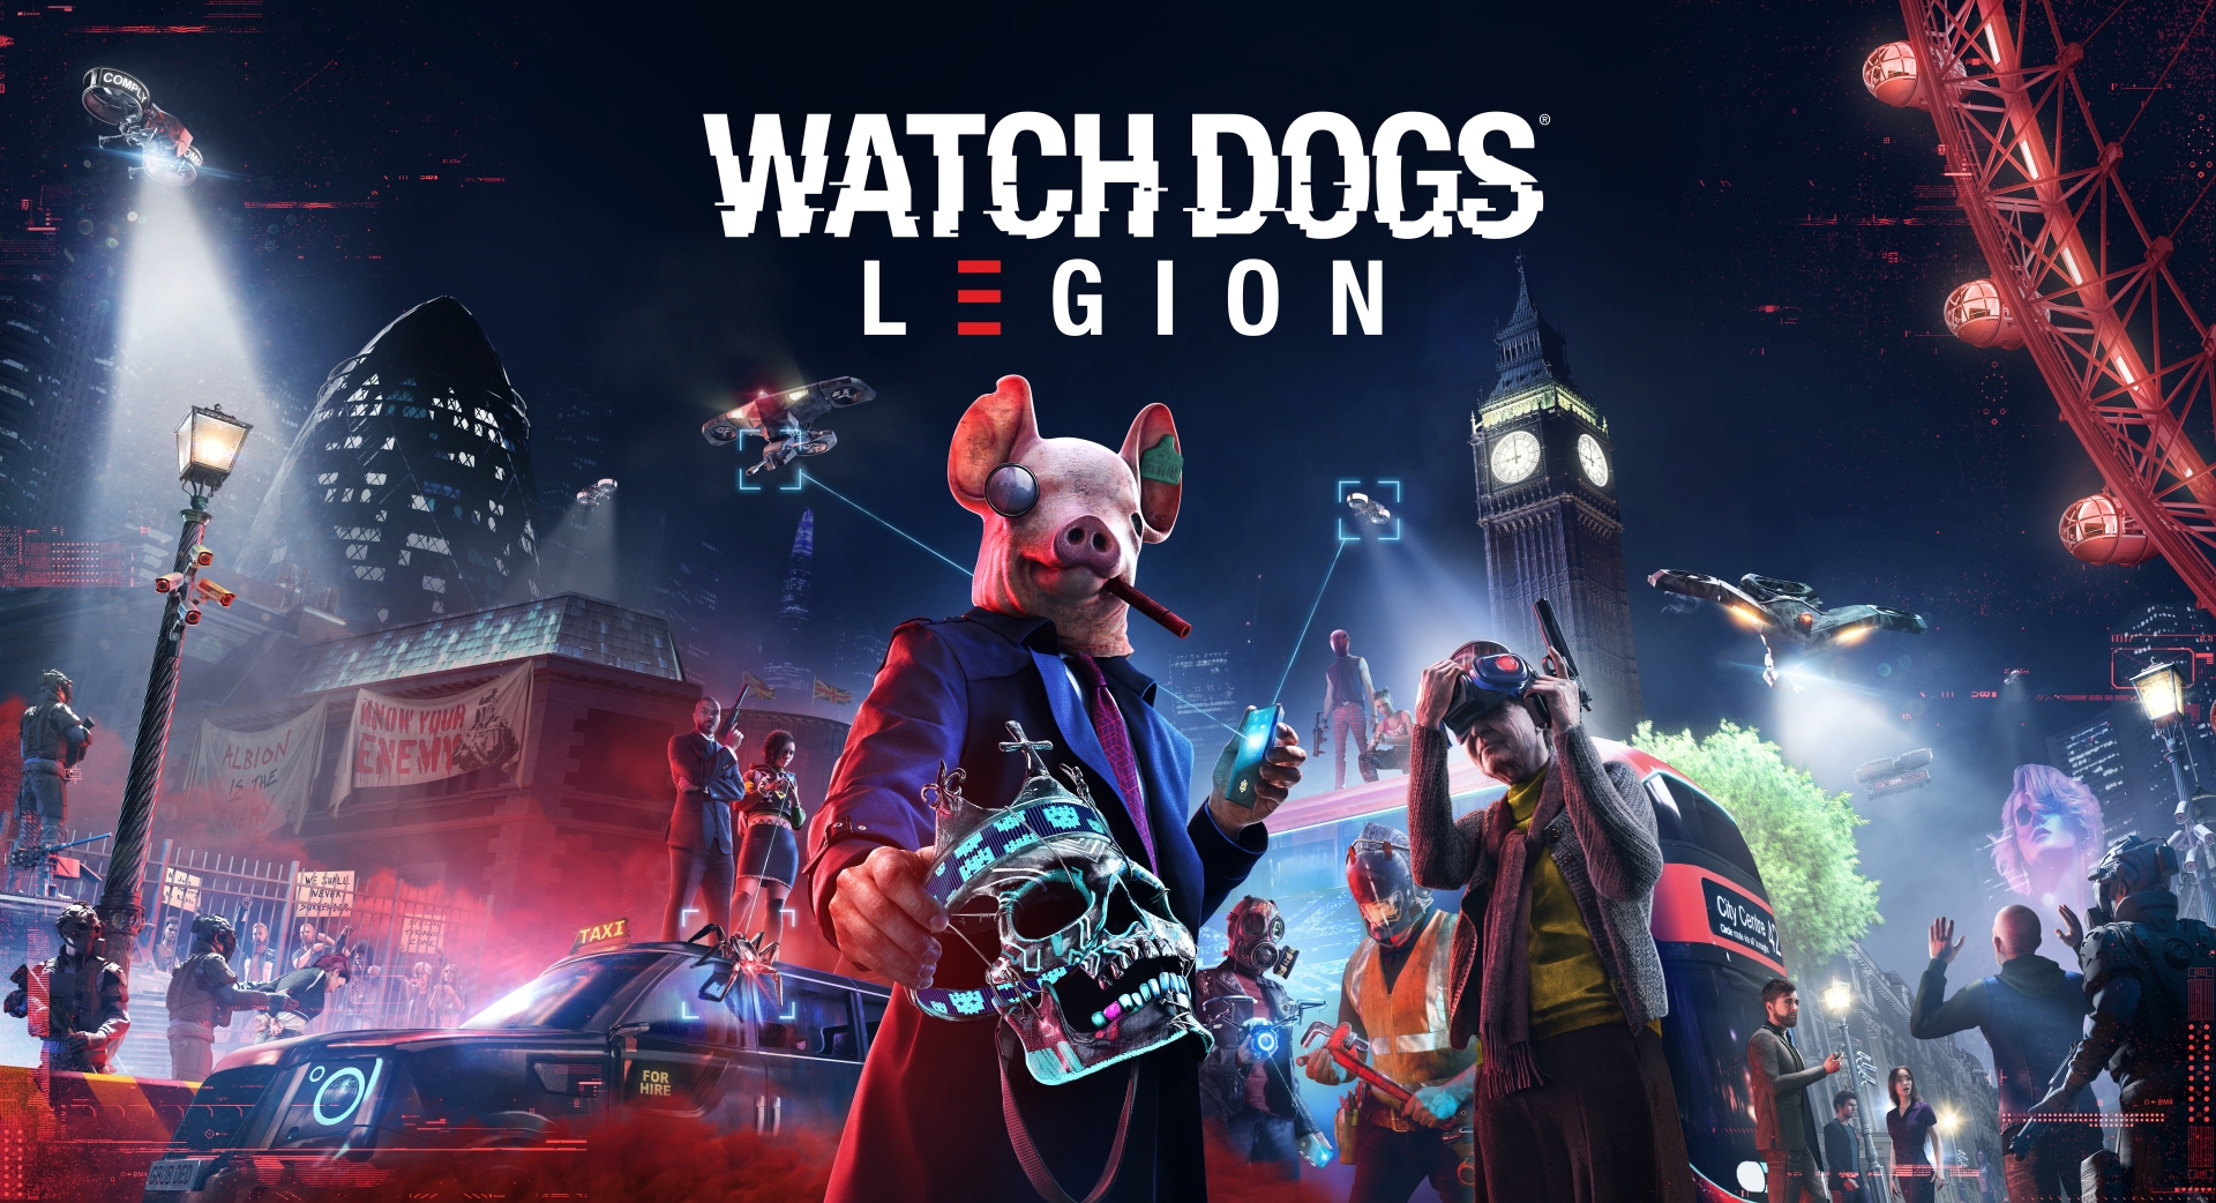 Preview: WATCH DOGS: LEGION RELEASE WIRD MIT GROSS ANGELEGTER INFLUENCER-KAMPAGNE BEWORBEN